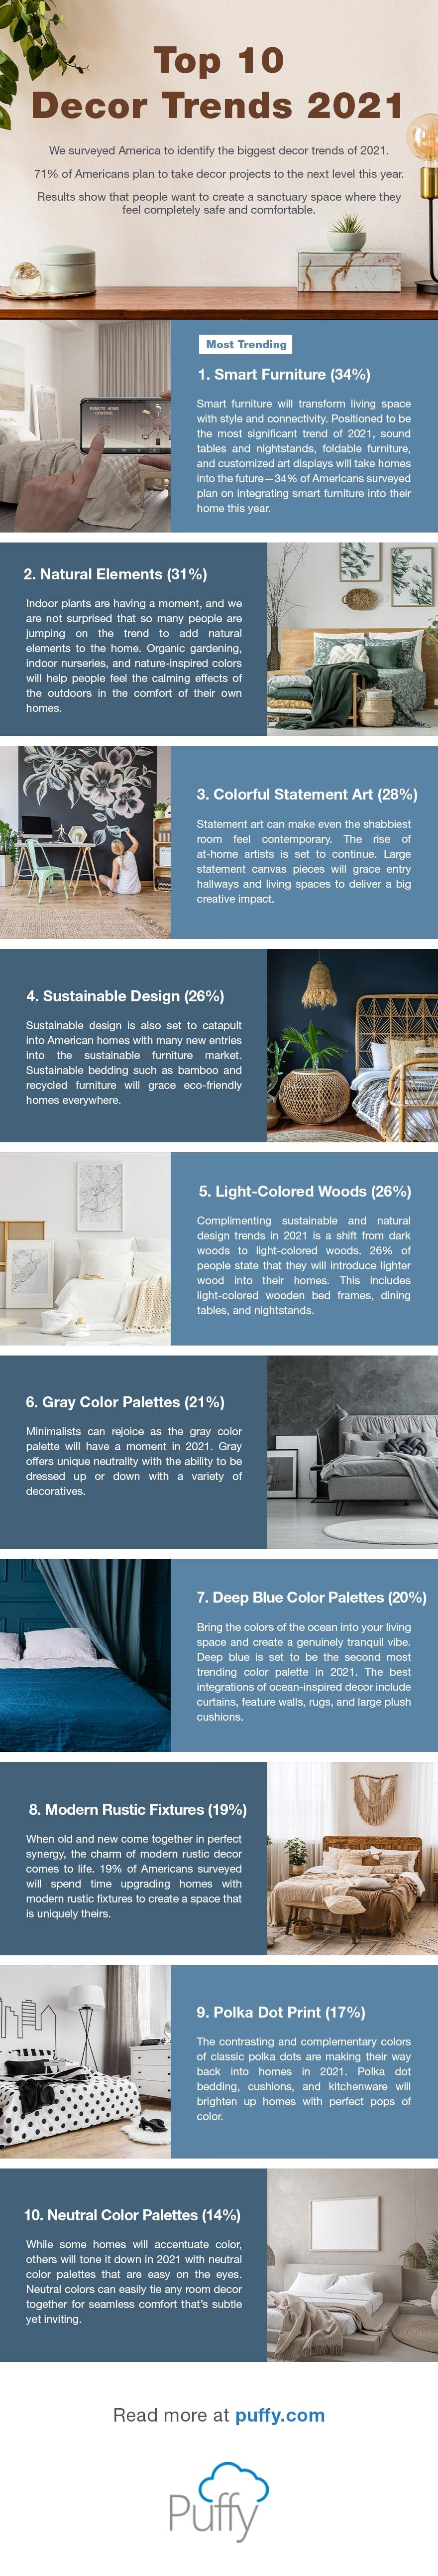 puffy top 10 decor trends 0f 2021